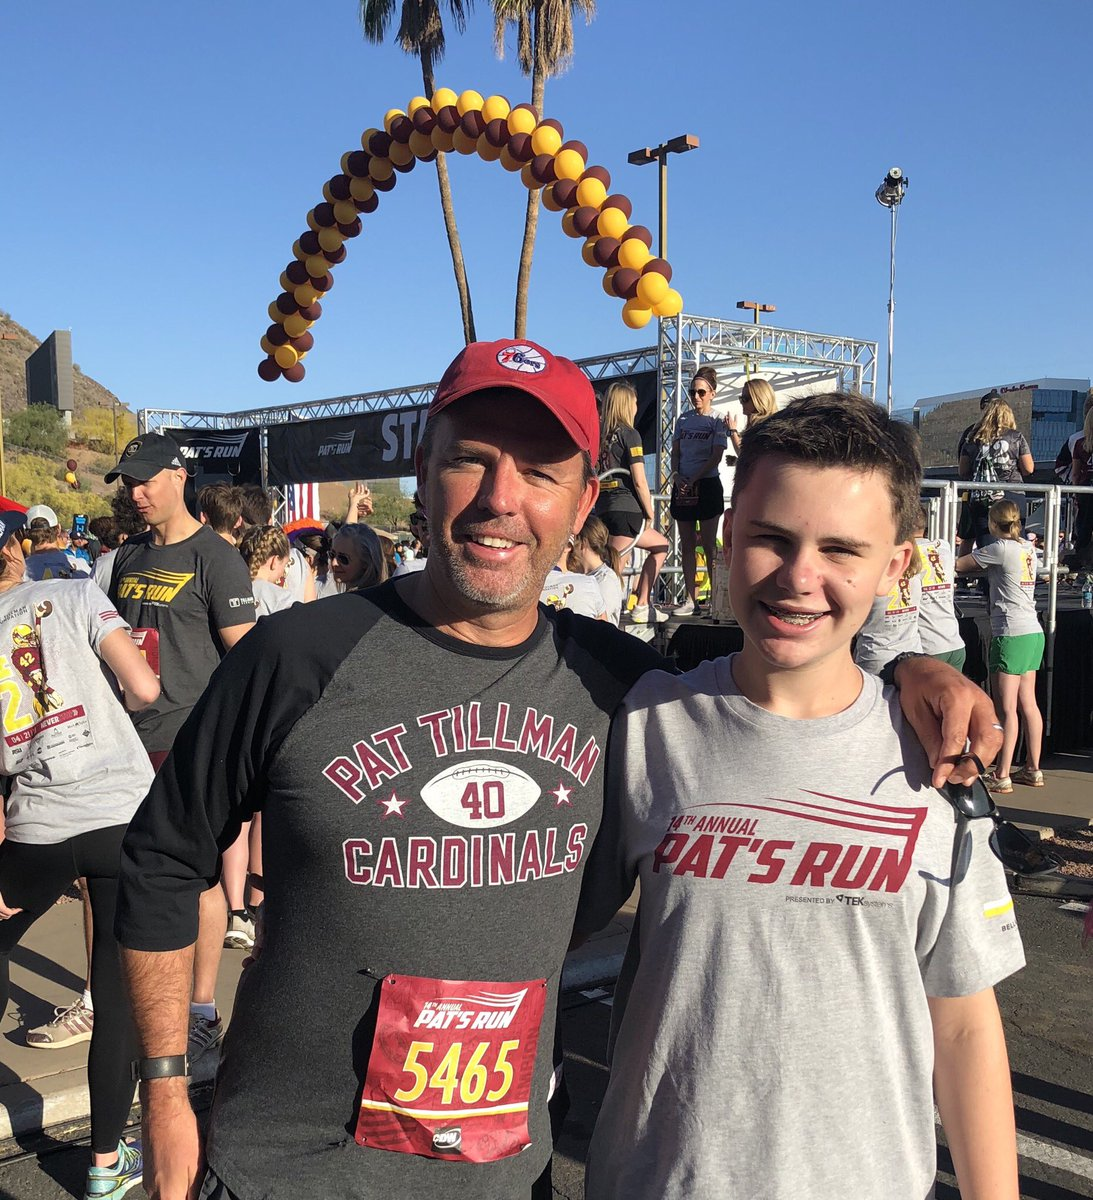 Gorgeous morning in Tempe for Will, me and 28,000 of our closest friends at Pat's Run